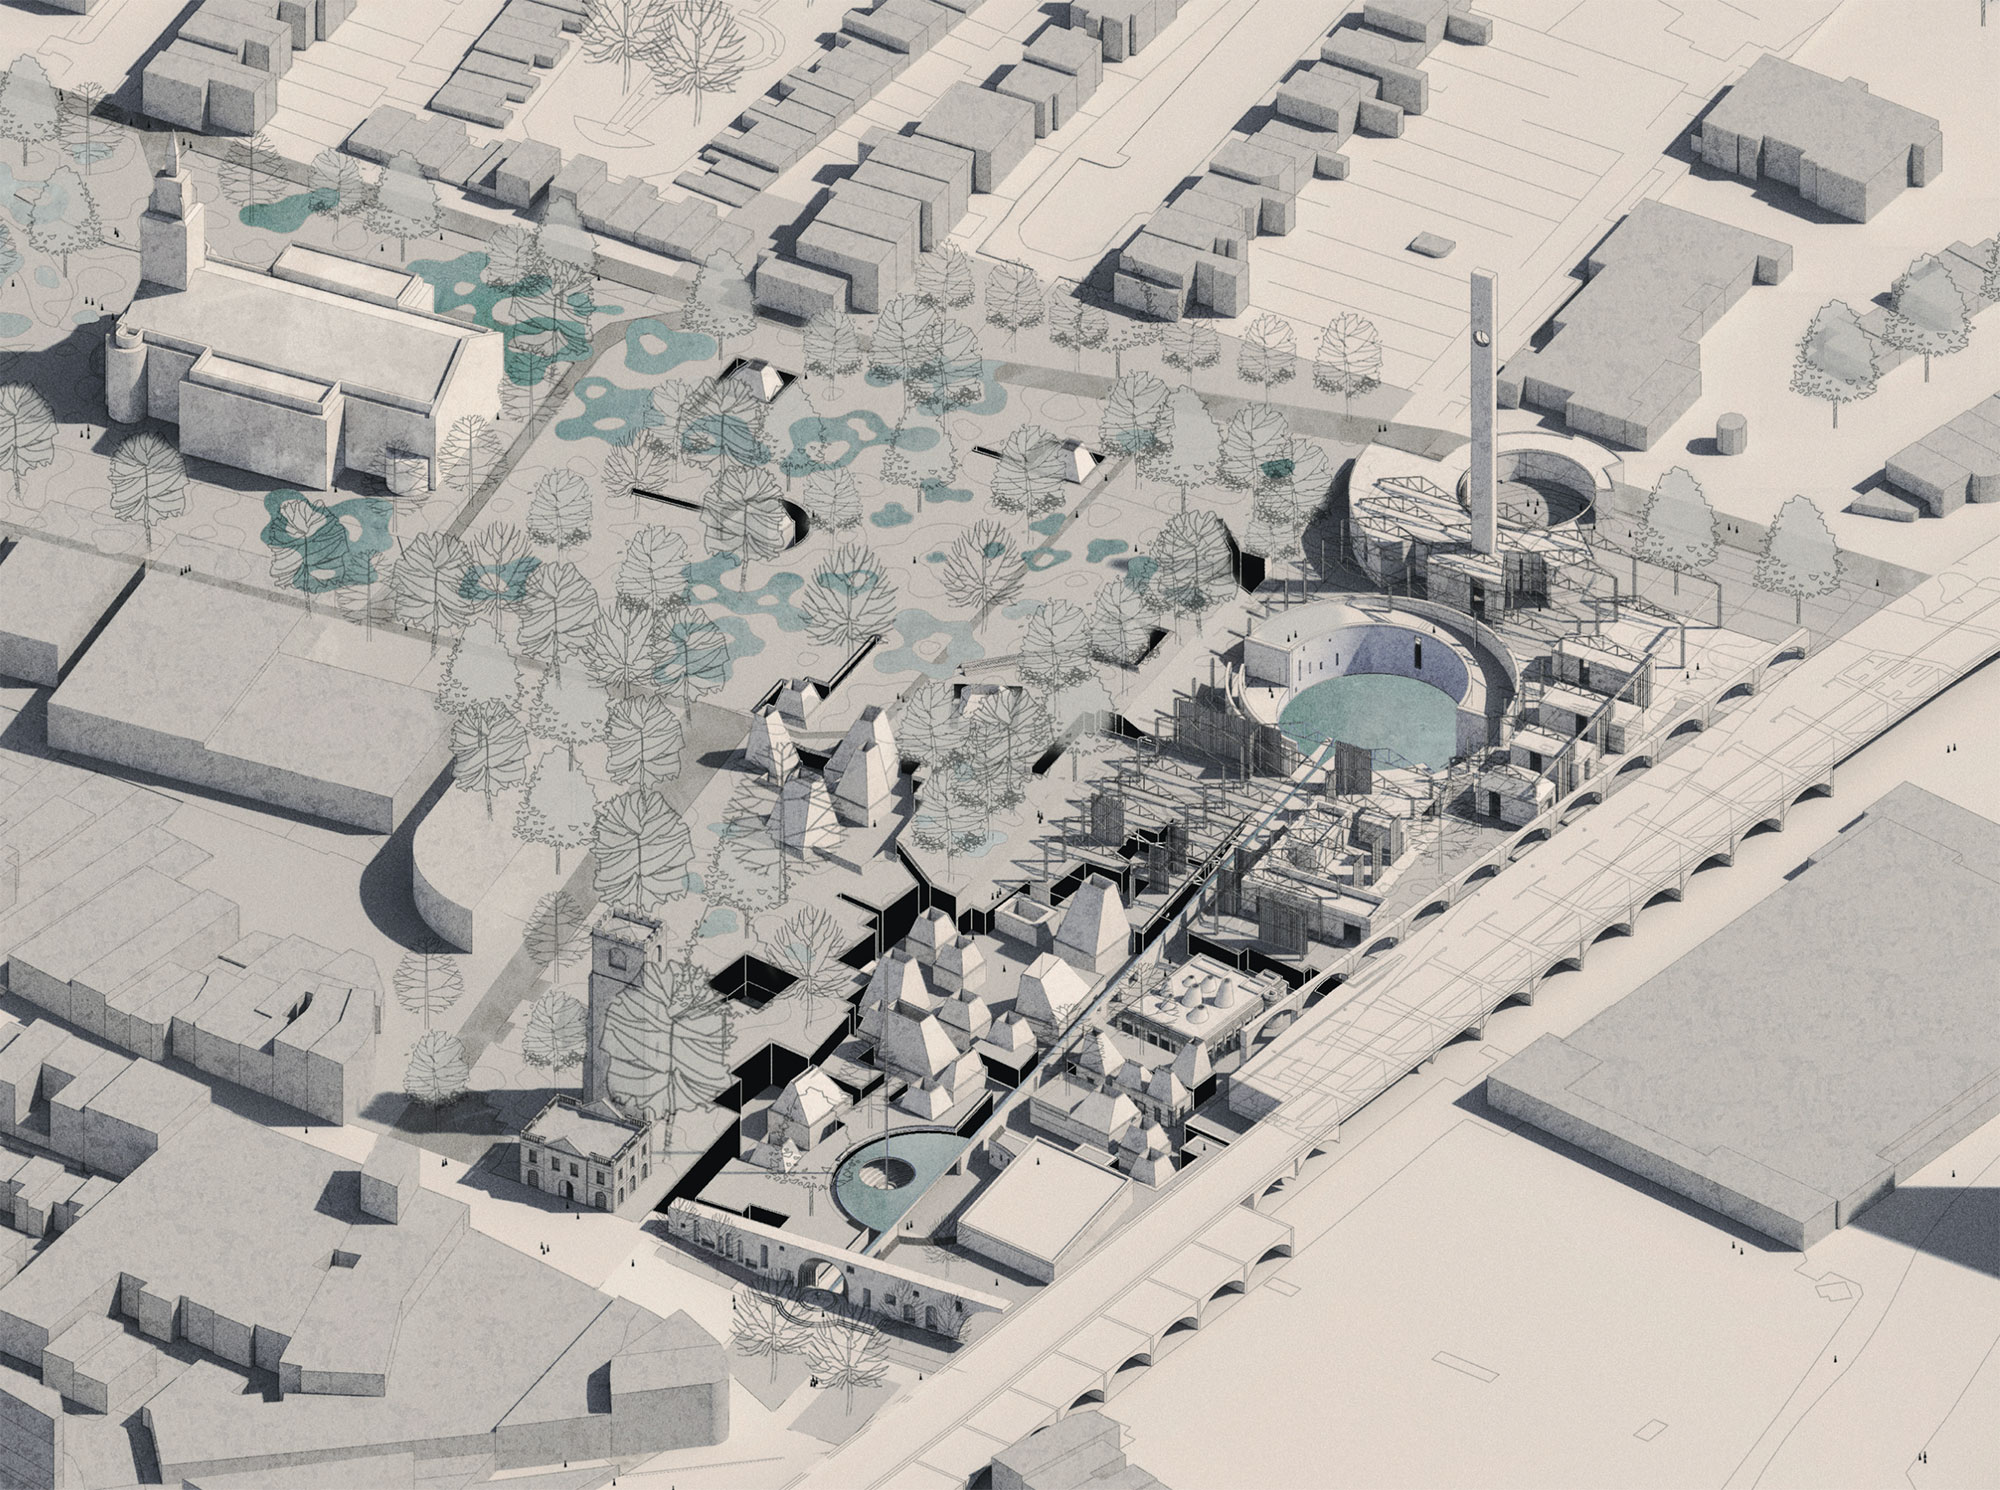 Circadian Commons sits moulded into the landscape with the lido on an axis with St John's Church.